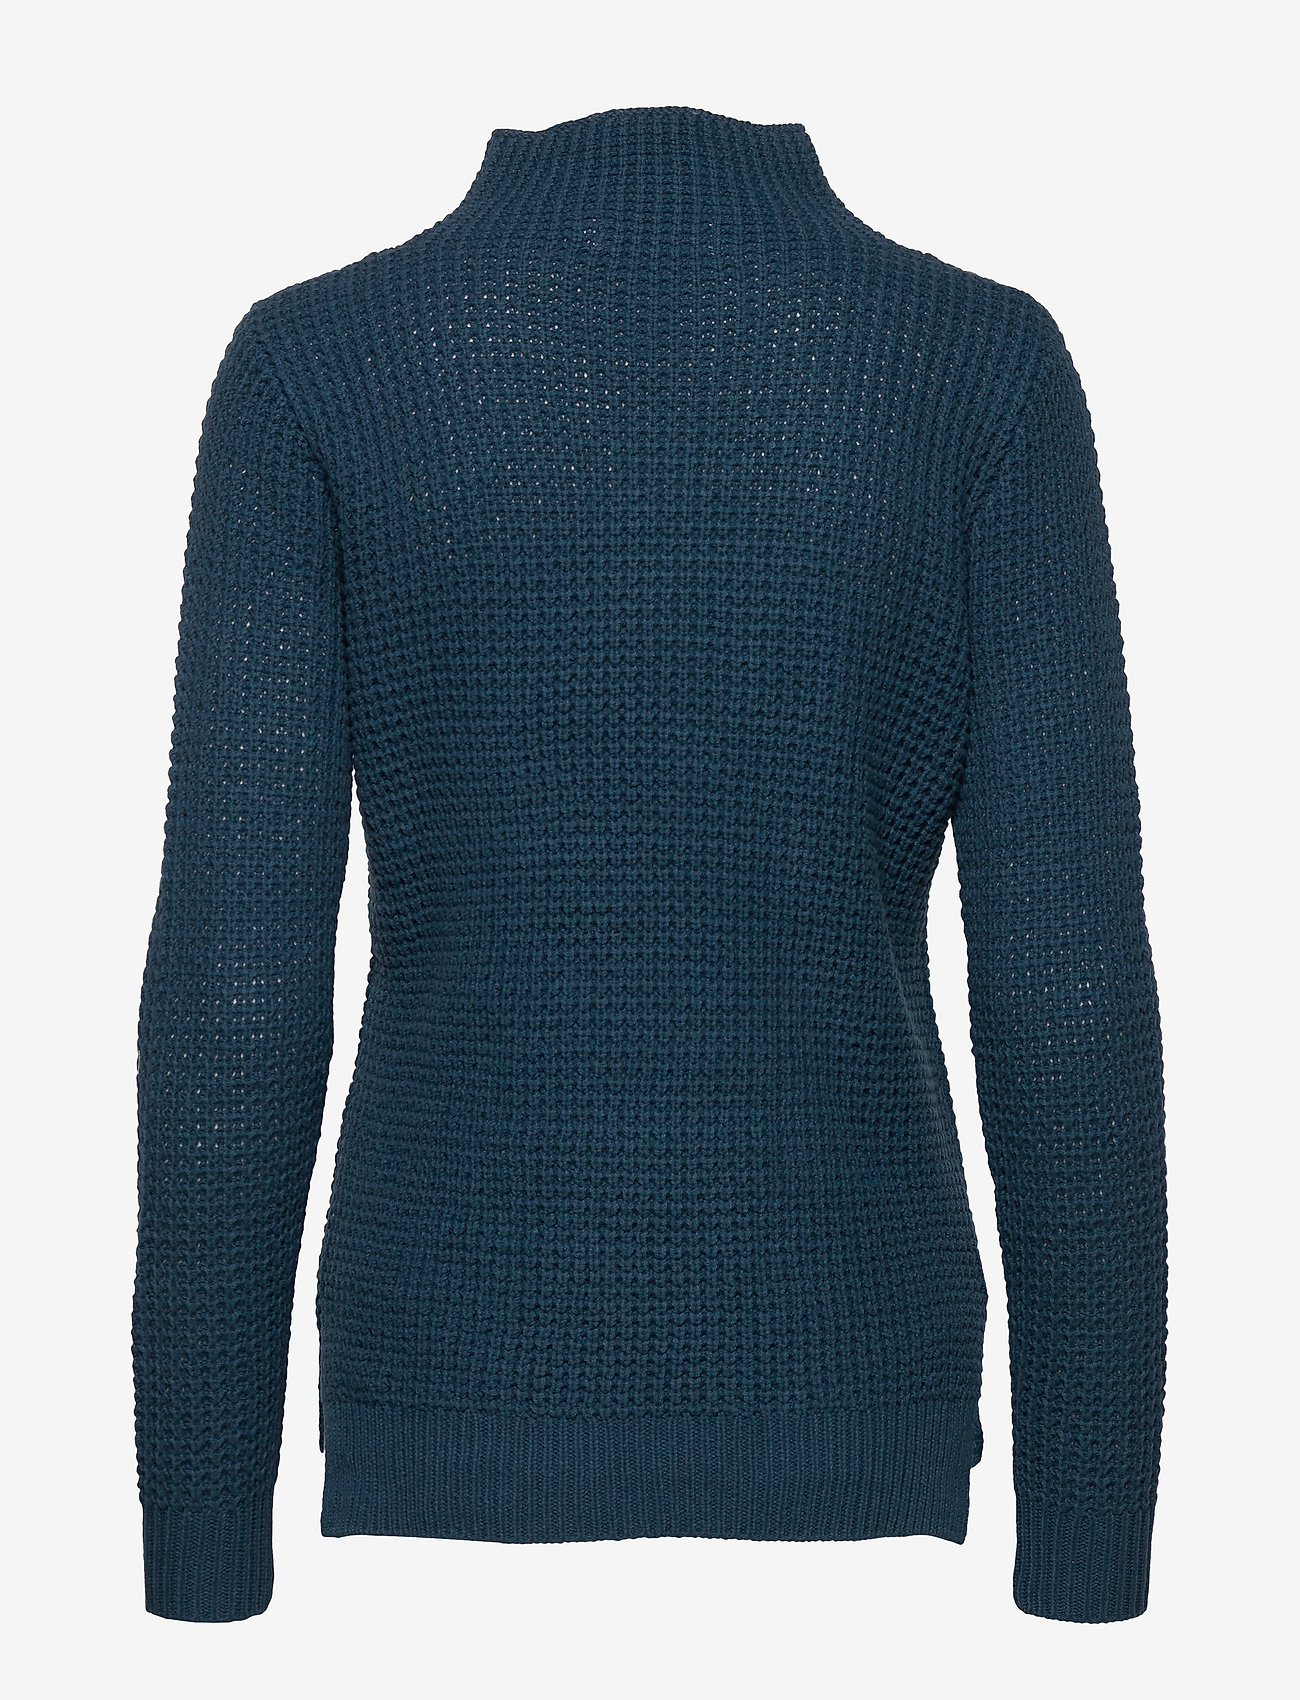 Sail Racing - W RACE WAFFLE KNIT POLO - jumpers - dark teal - 1